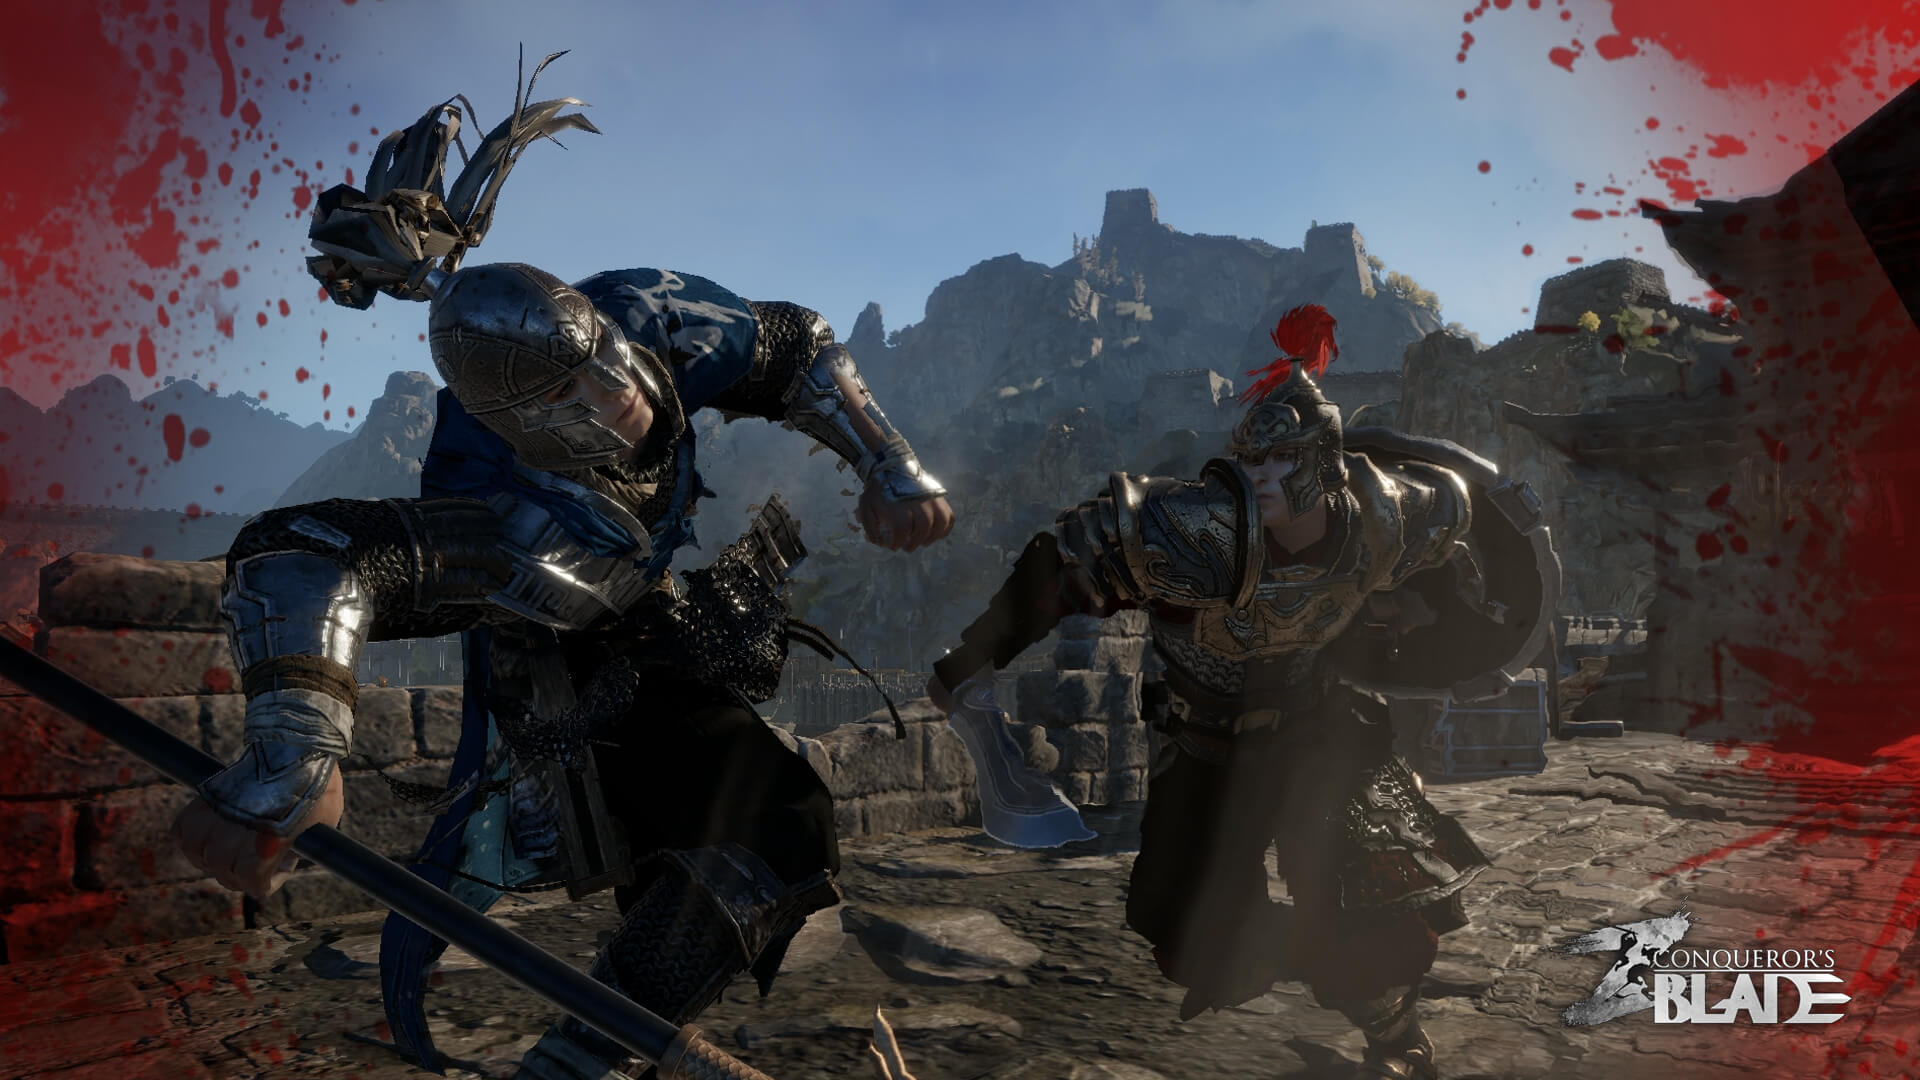 Conqueror's Blade Screenshot 4